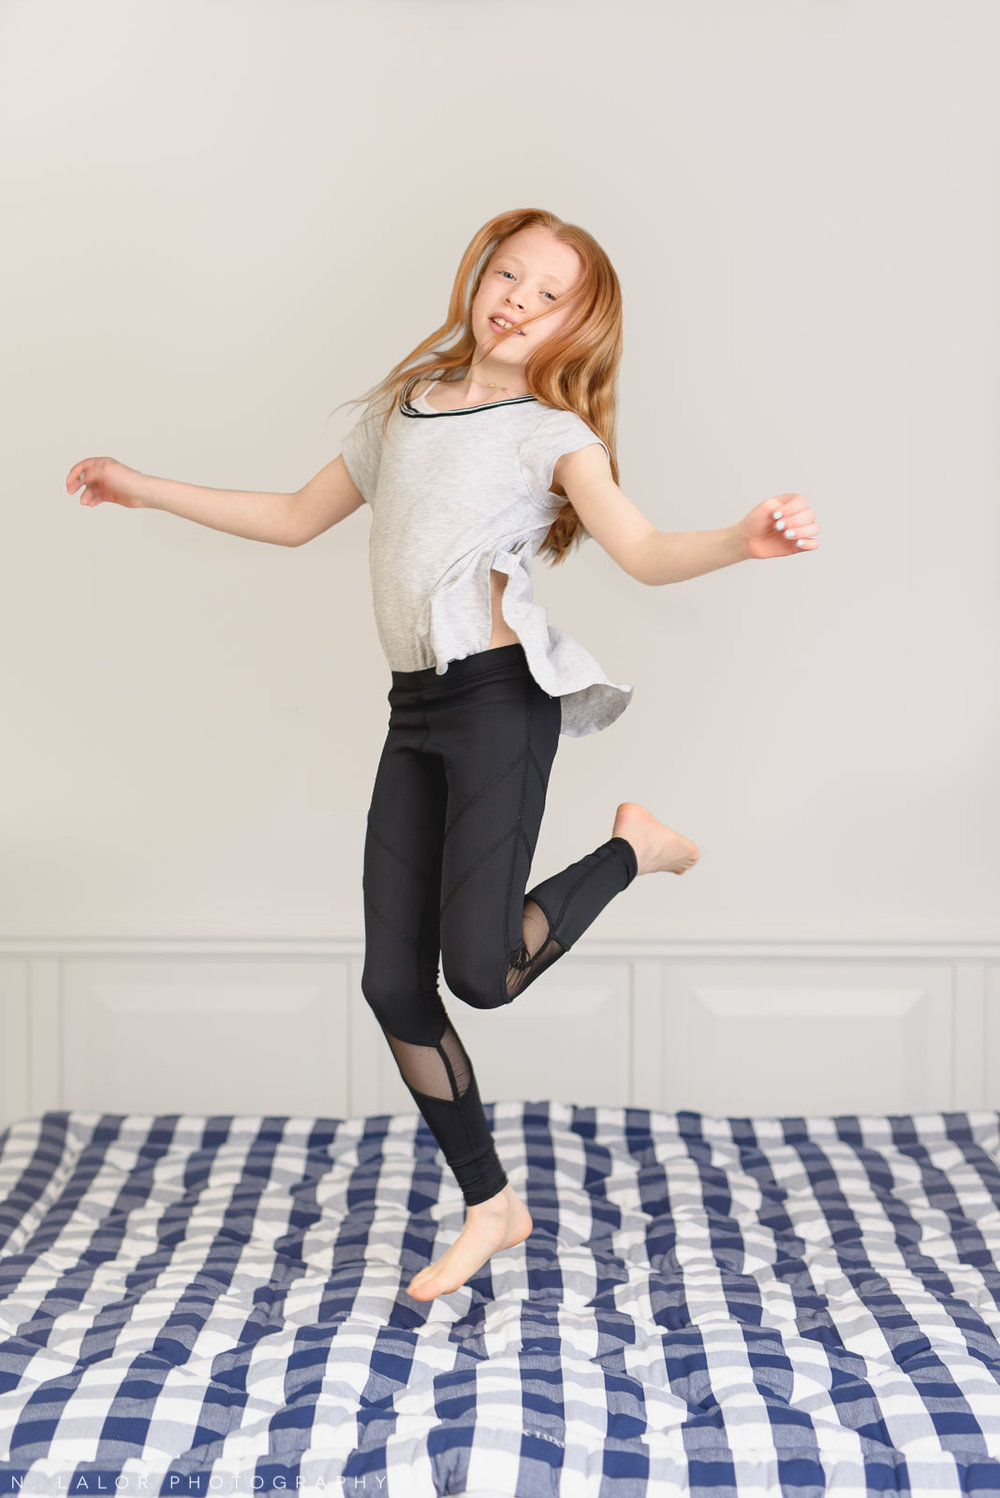 Girl having fun jumping on a Hästens bed. Limited-edition exclusive event with N. Lalor Photography and Hästens in Greenwich, Connecticut.